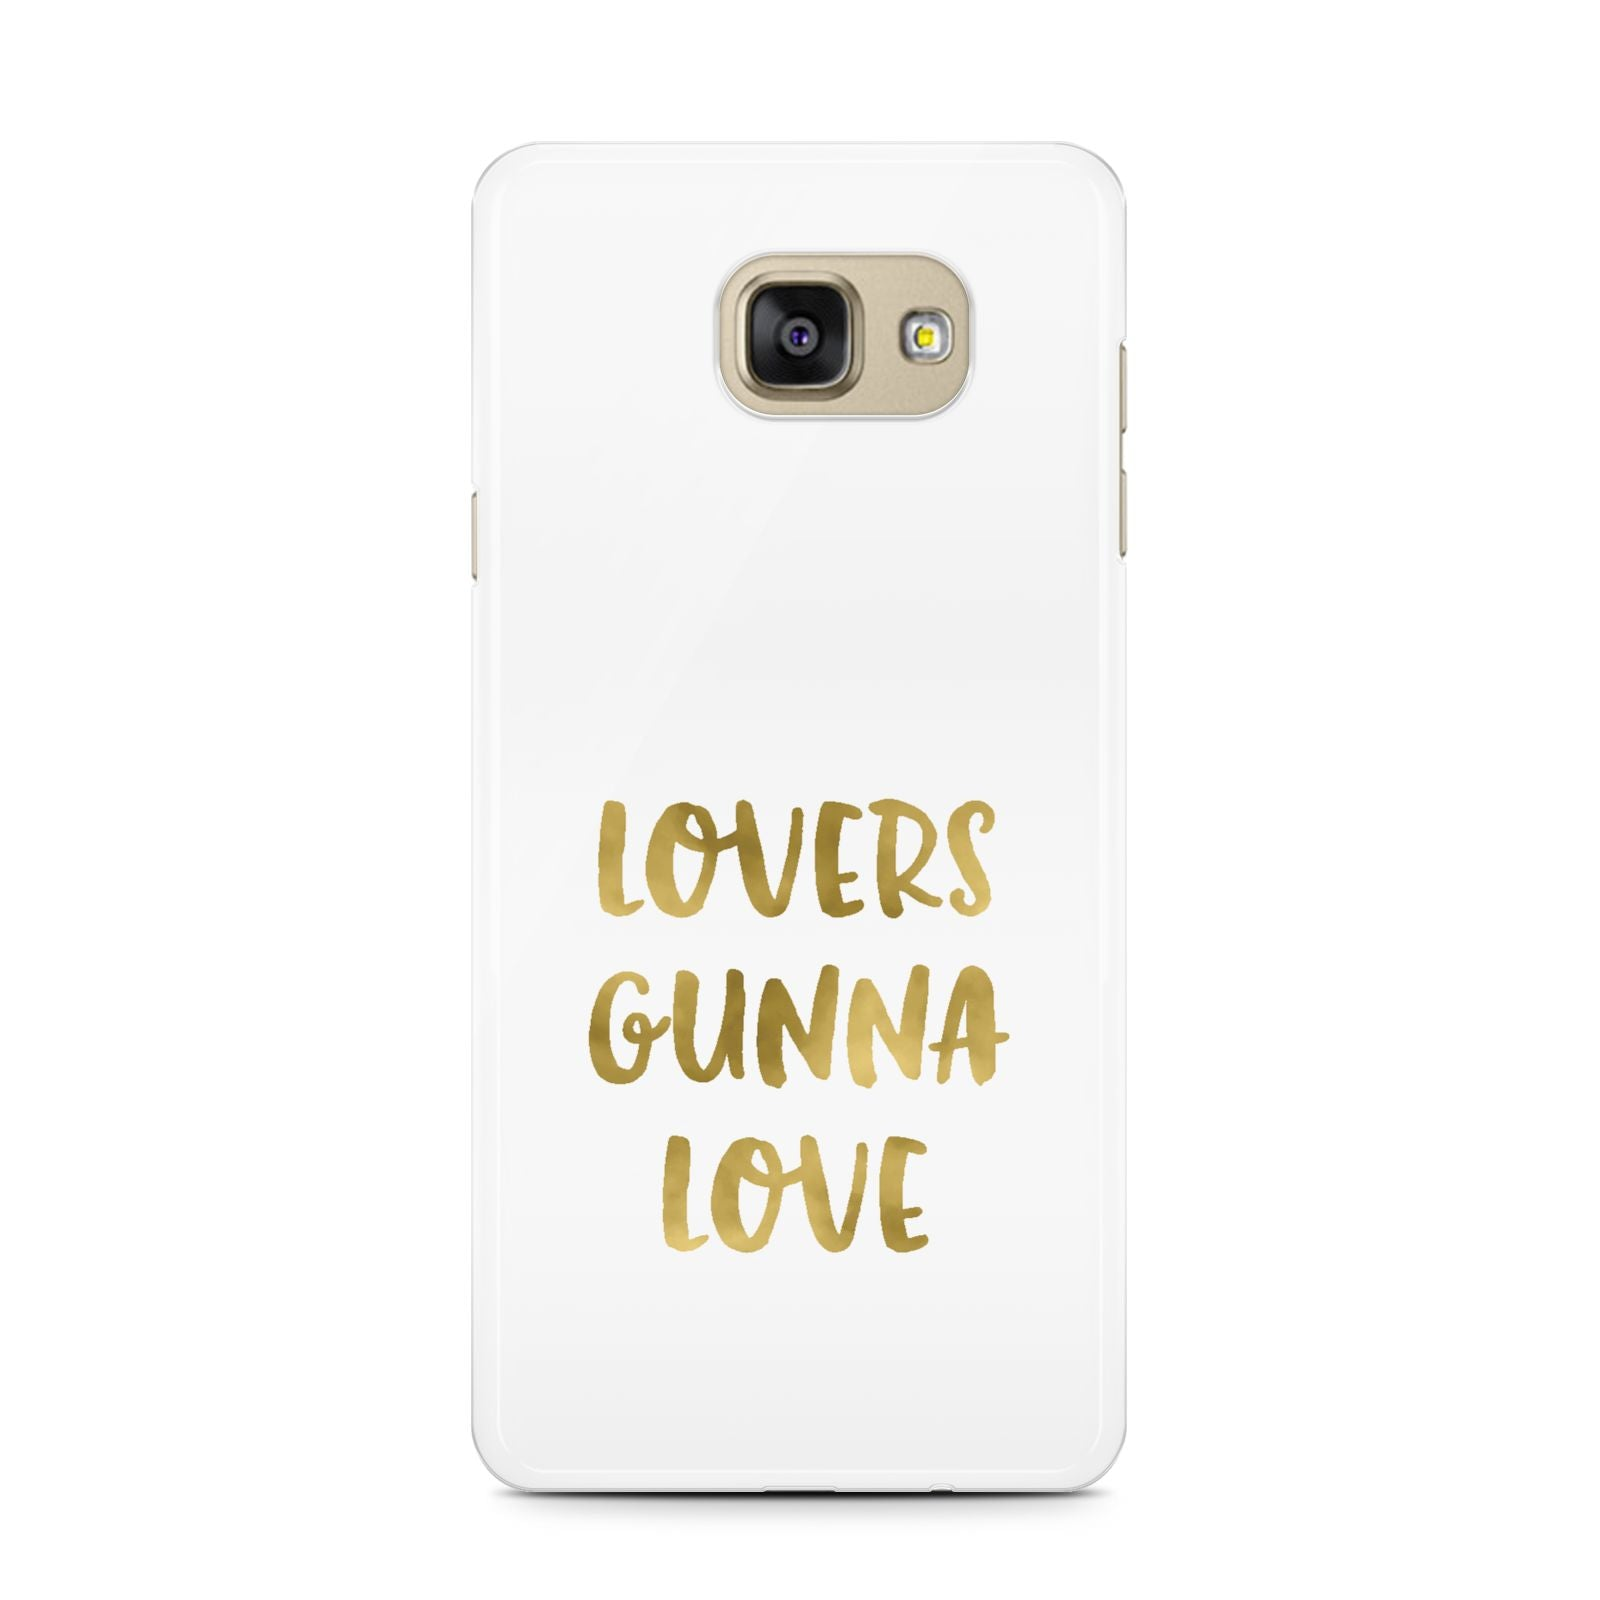 Lovers Gunna Love Real Gold Foil Samsung Galaxy A7 2016 Case on gold phone